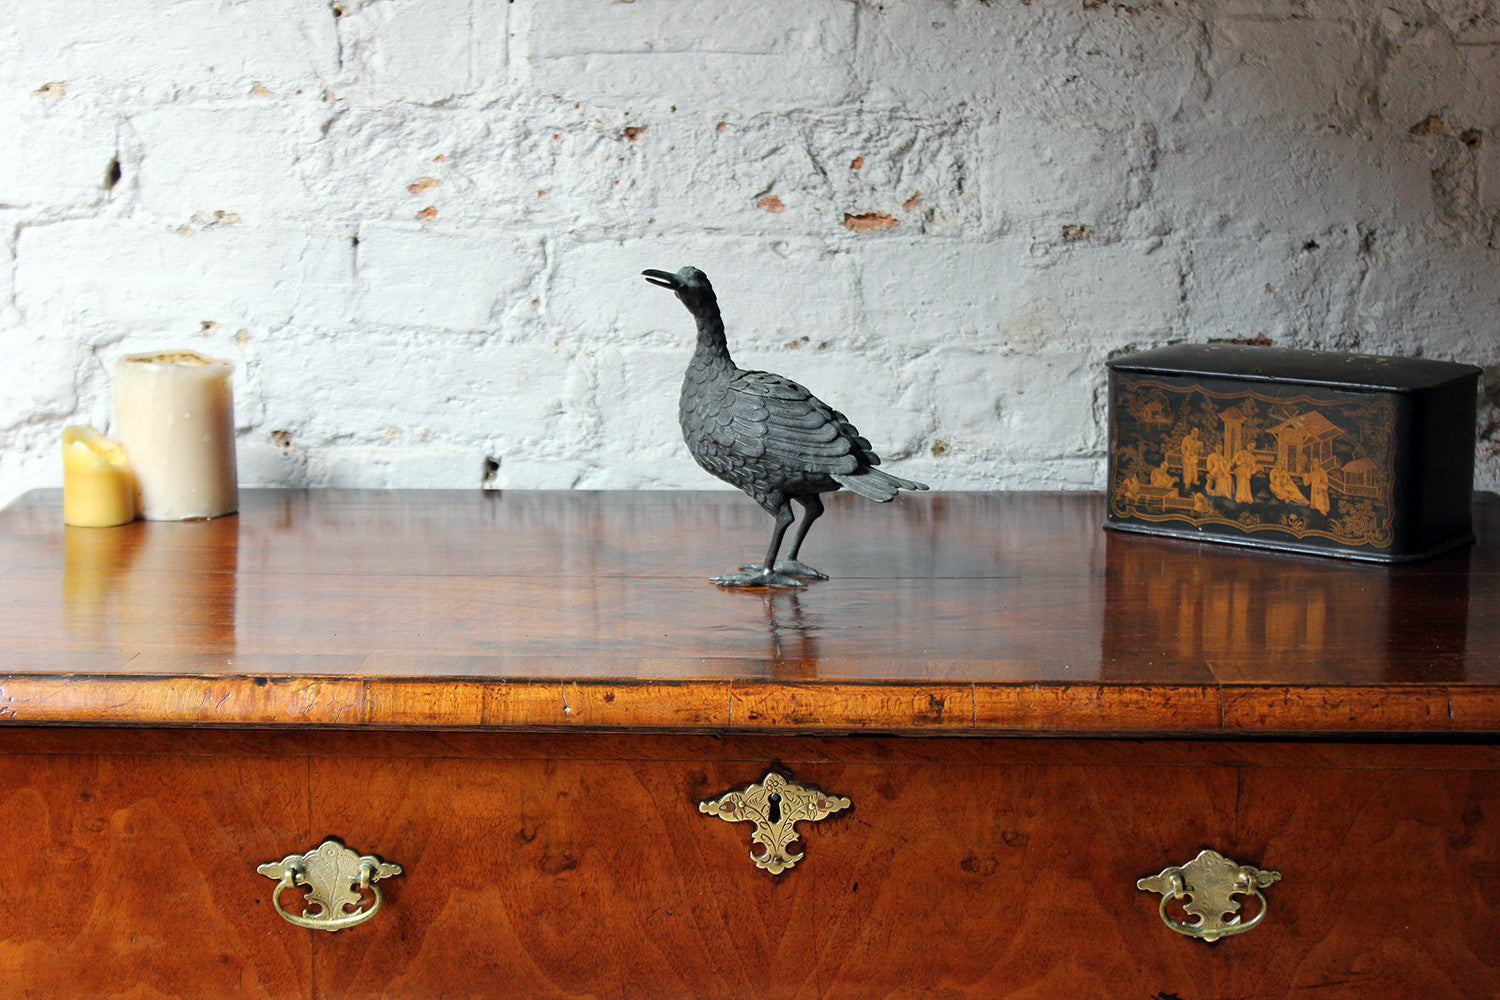 A Good c.1900 Patinated Bronze Incense Burner Formed as a Water Bird